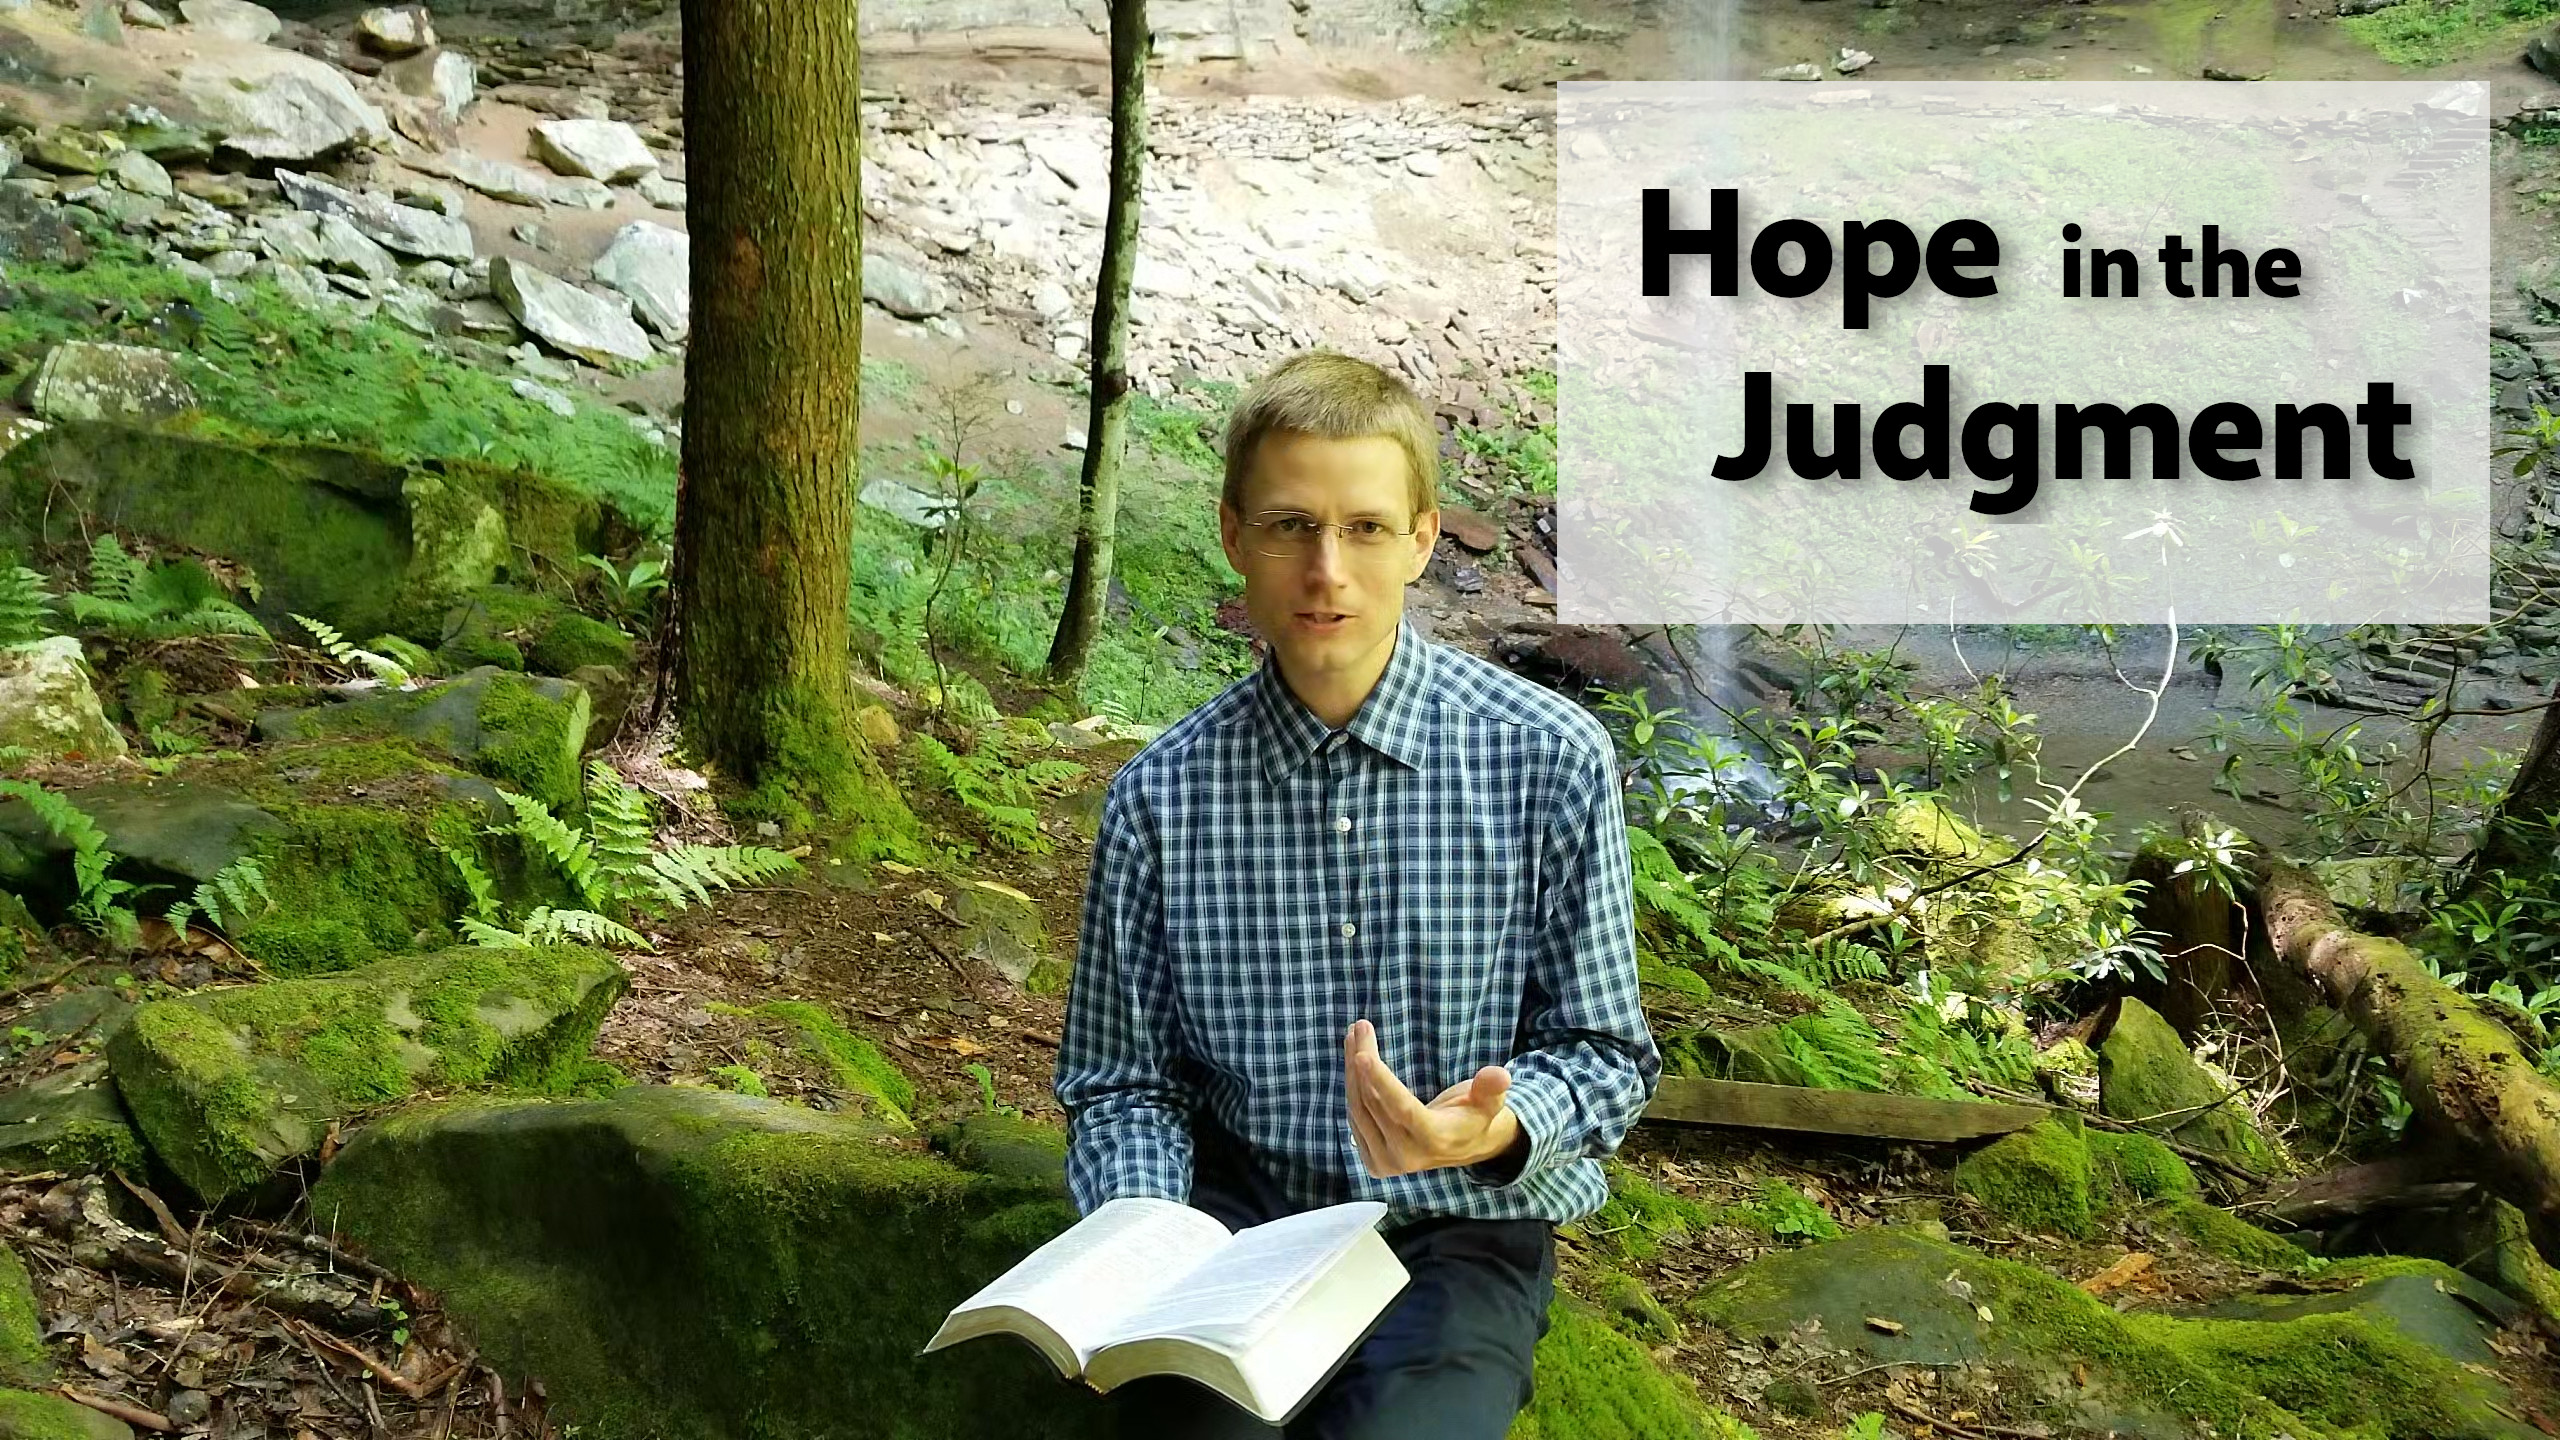 Hope in the Judgment